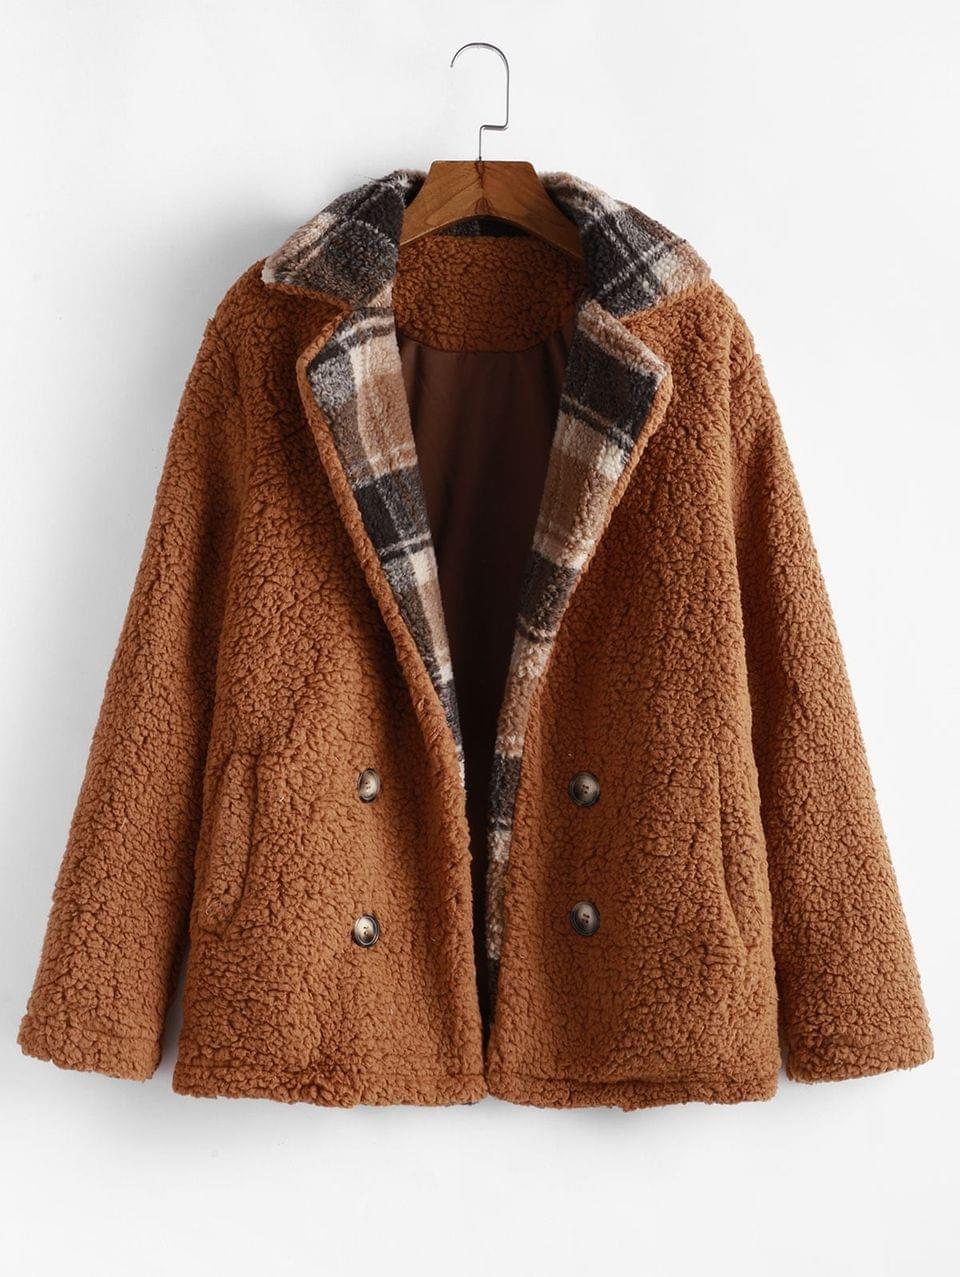 Women's Fuzzy Plaid Coat - Brown Xl